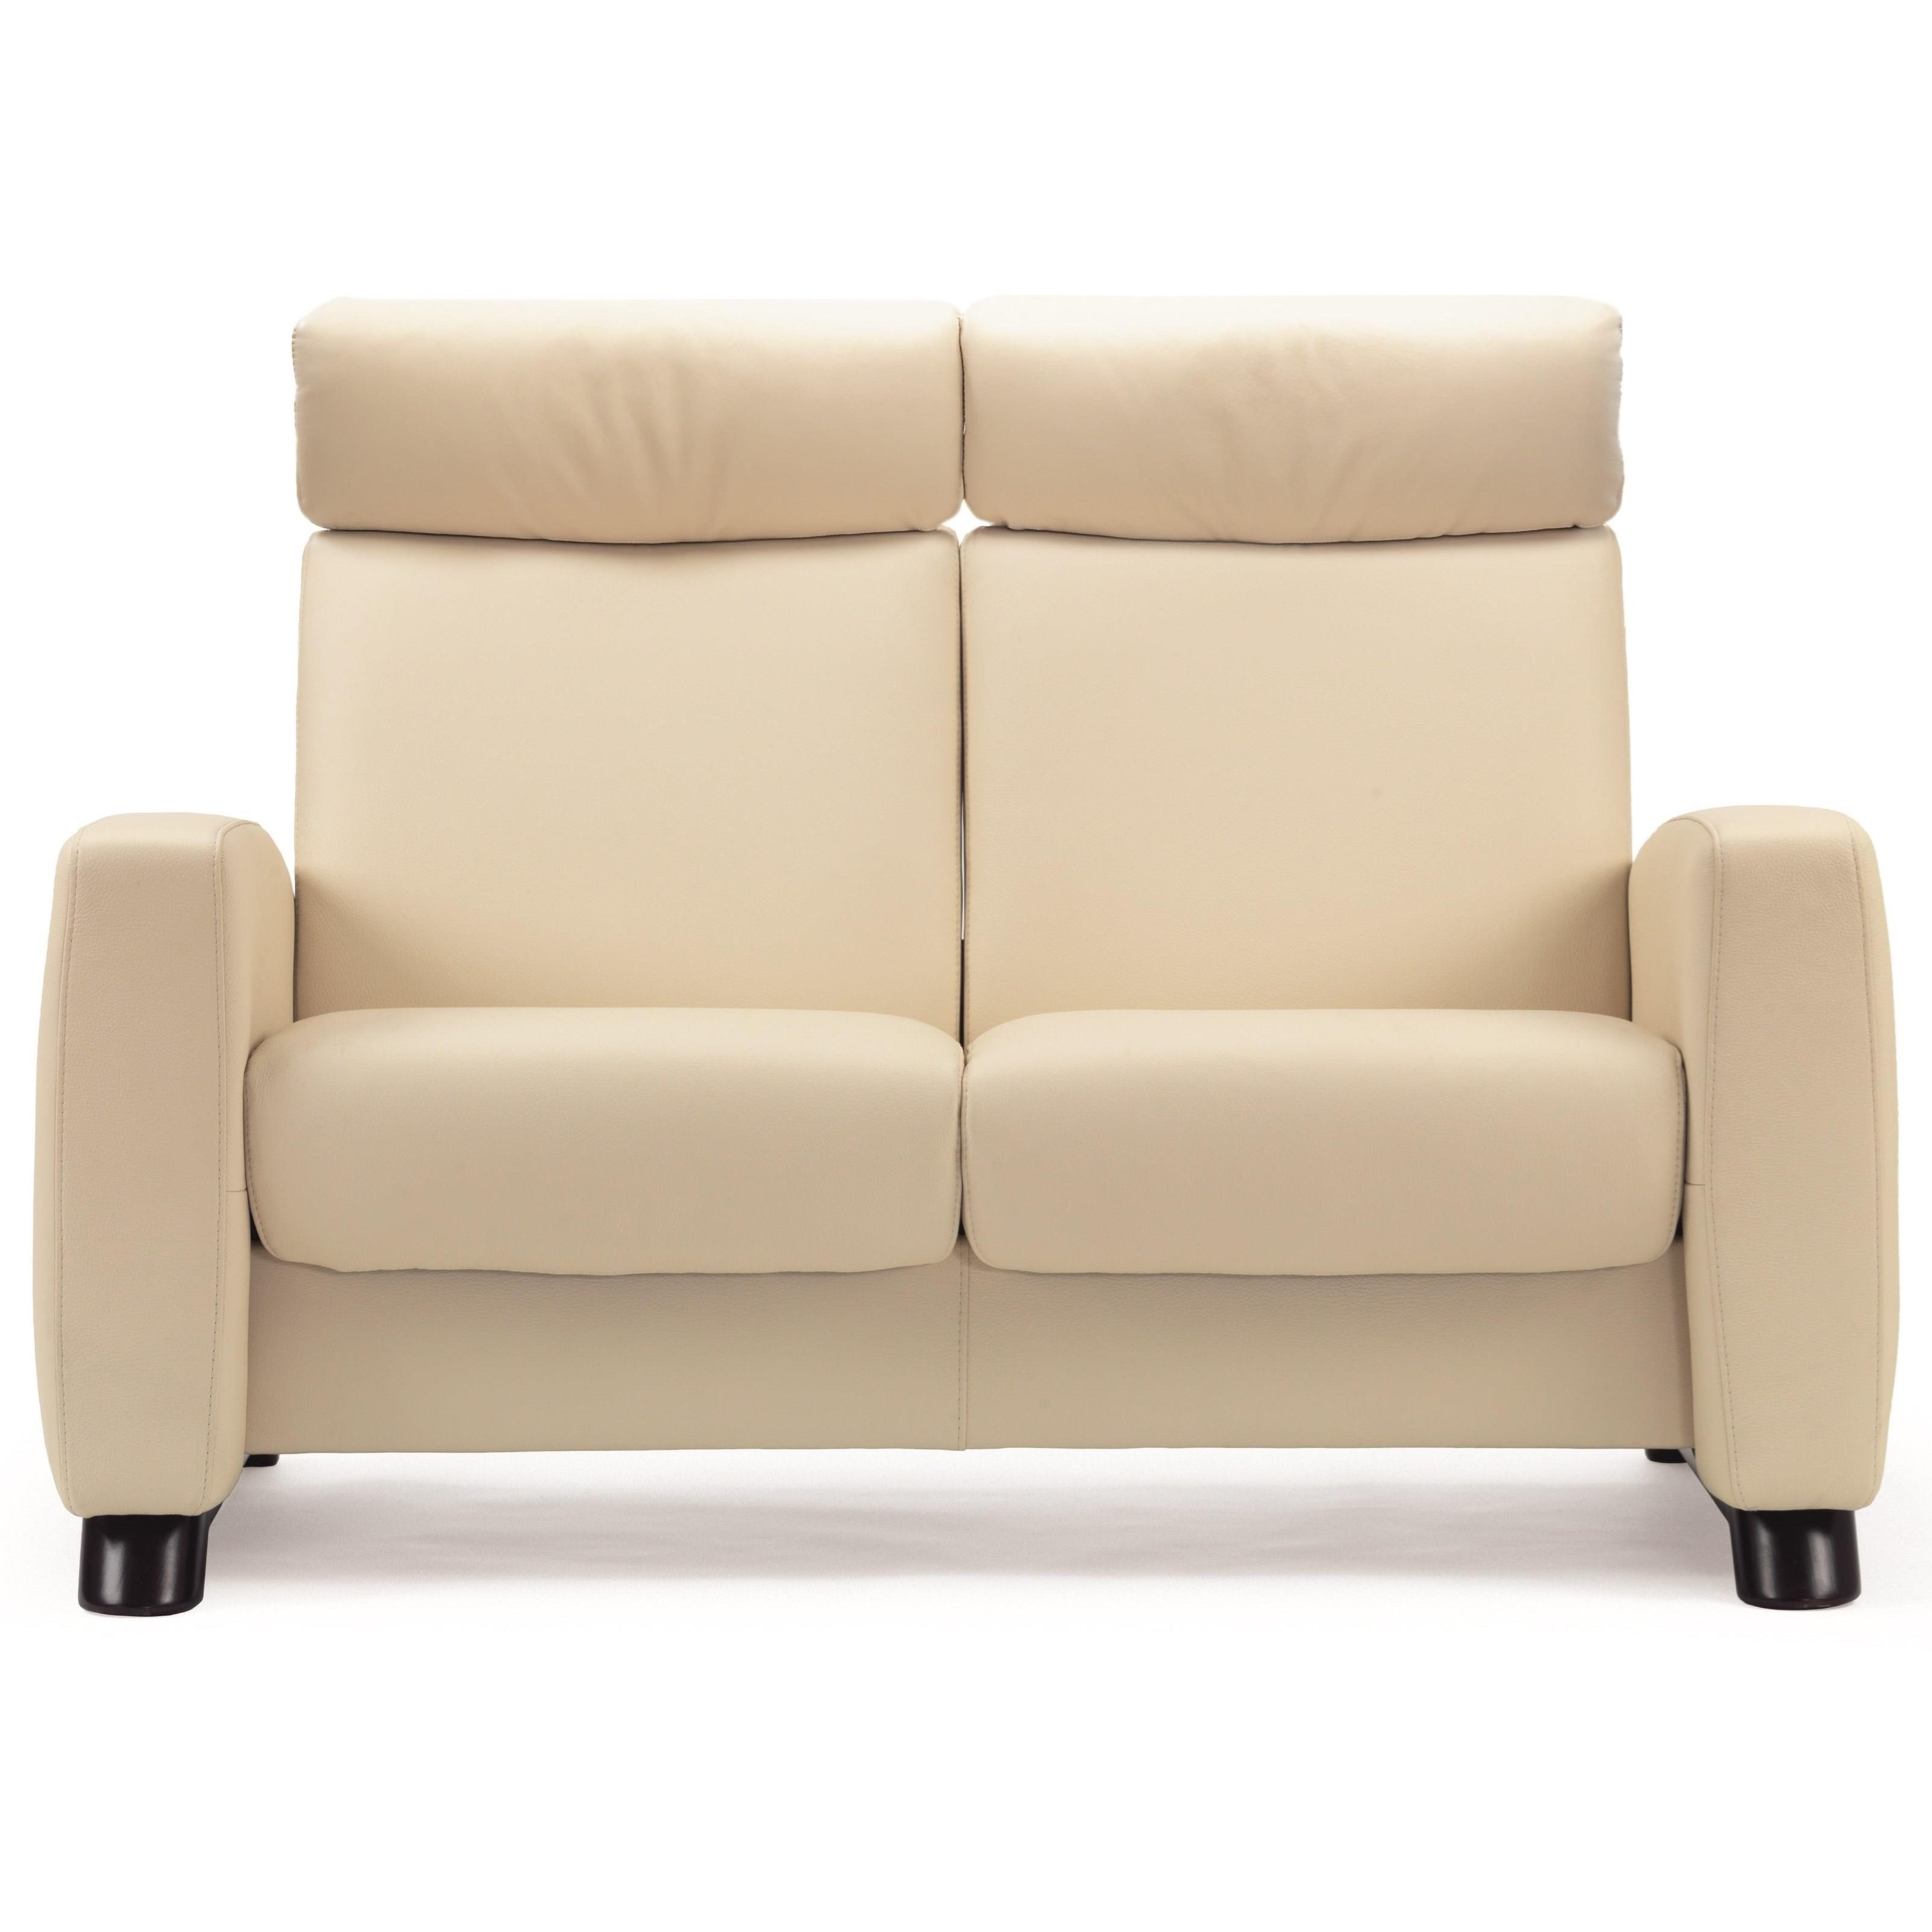 Arion 19 - A10 High-Back Reclining Loveseat by Stressless at Bennett's Furniture and Mattresses